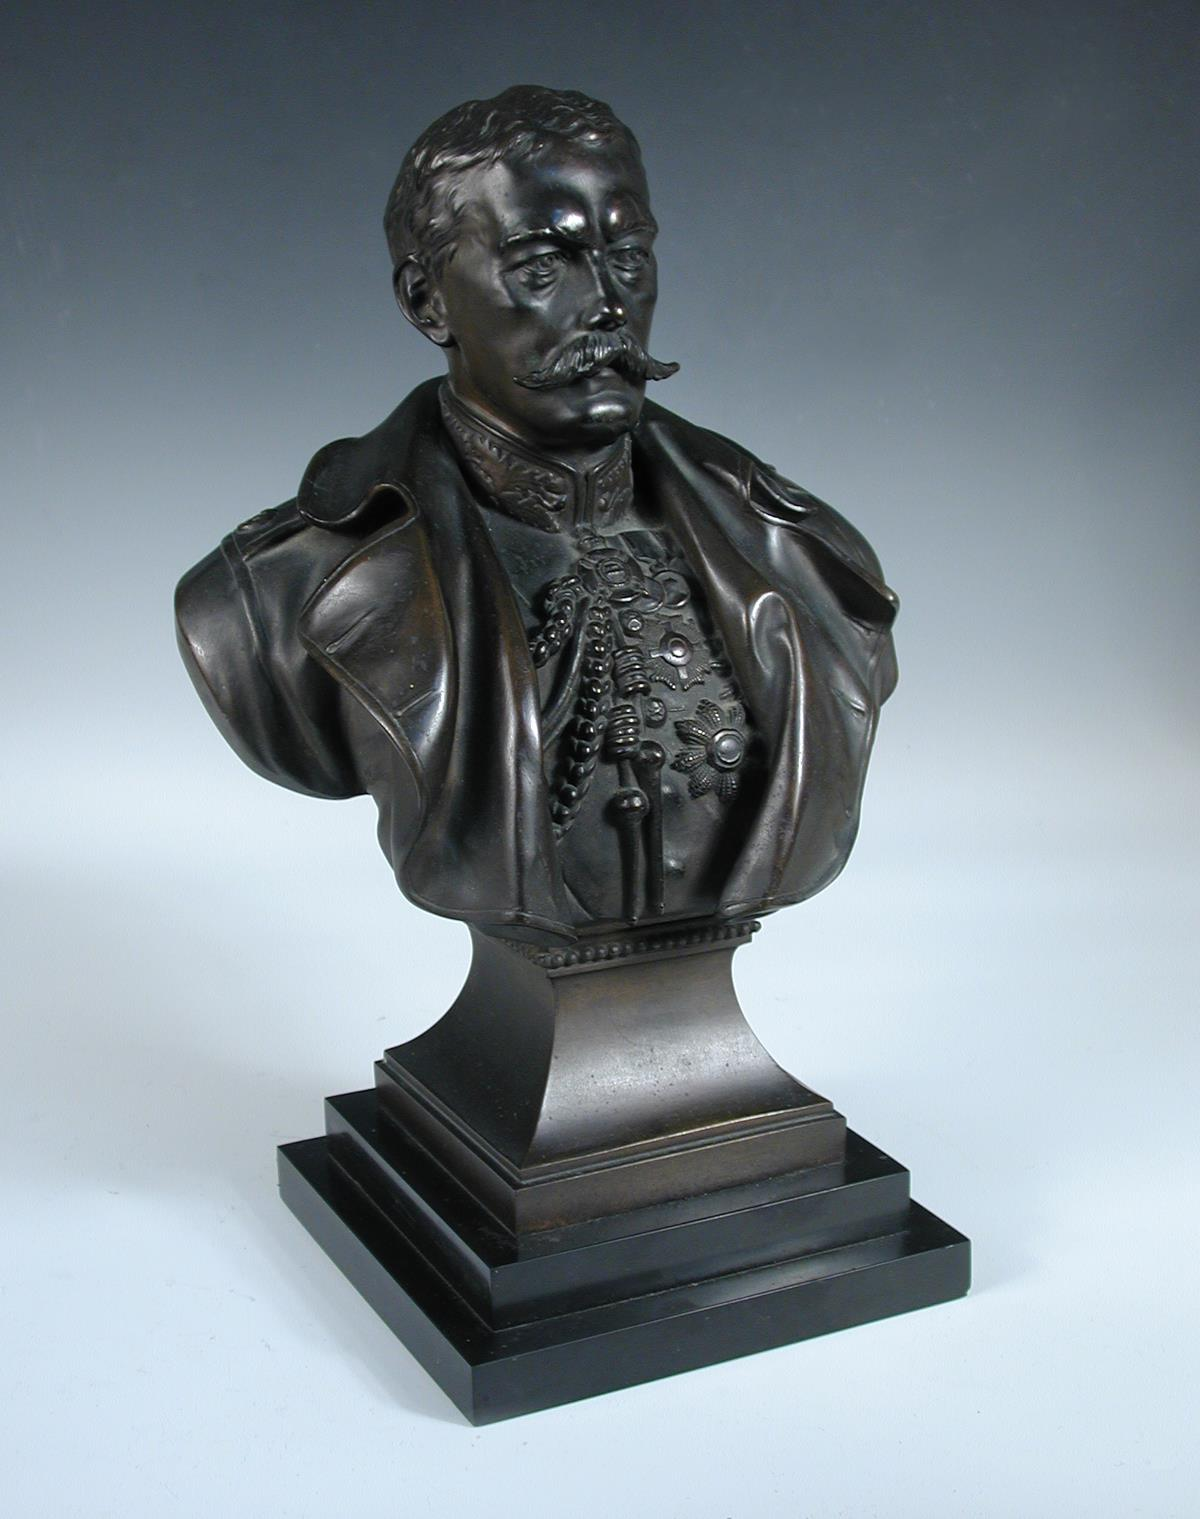 Richard Claude Belt (1851-1920), a bronze bust of Lord Kitchener together with other memorabilia - Image 2 of 2